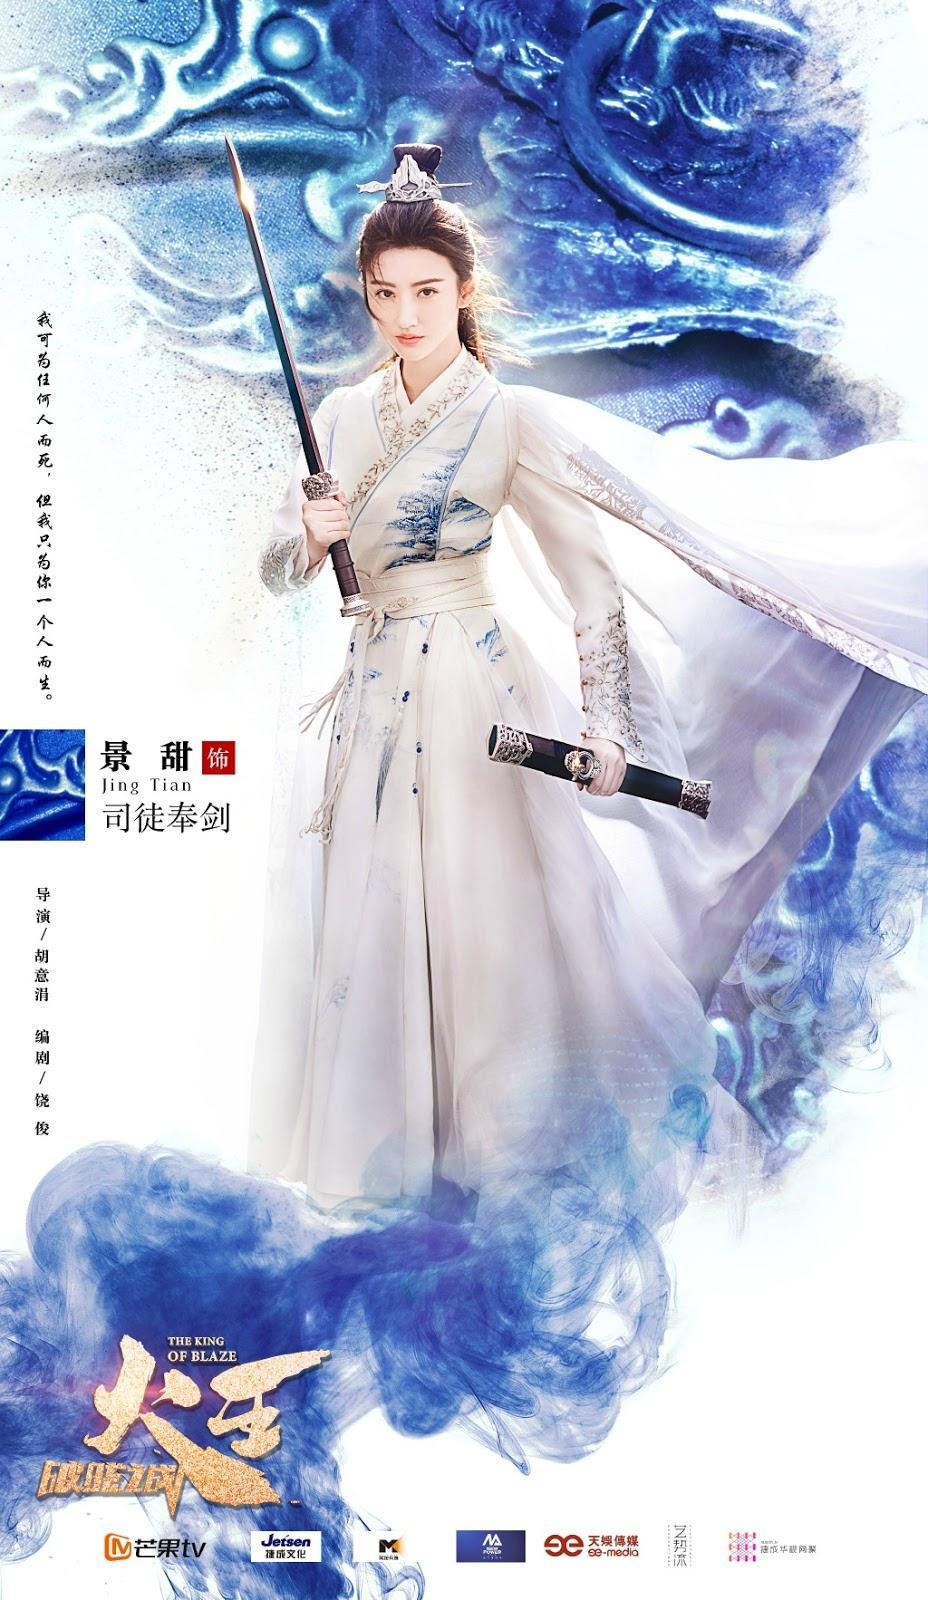 The King of Blaze Jing Tian